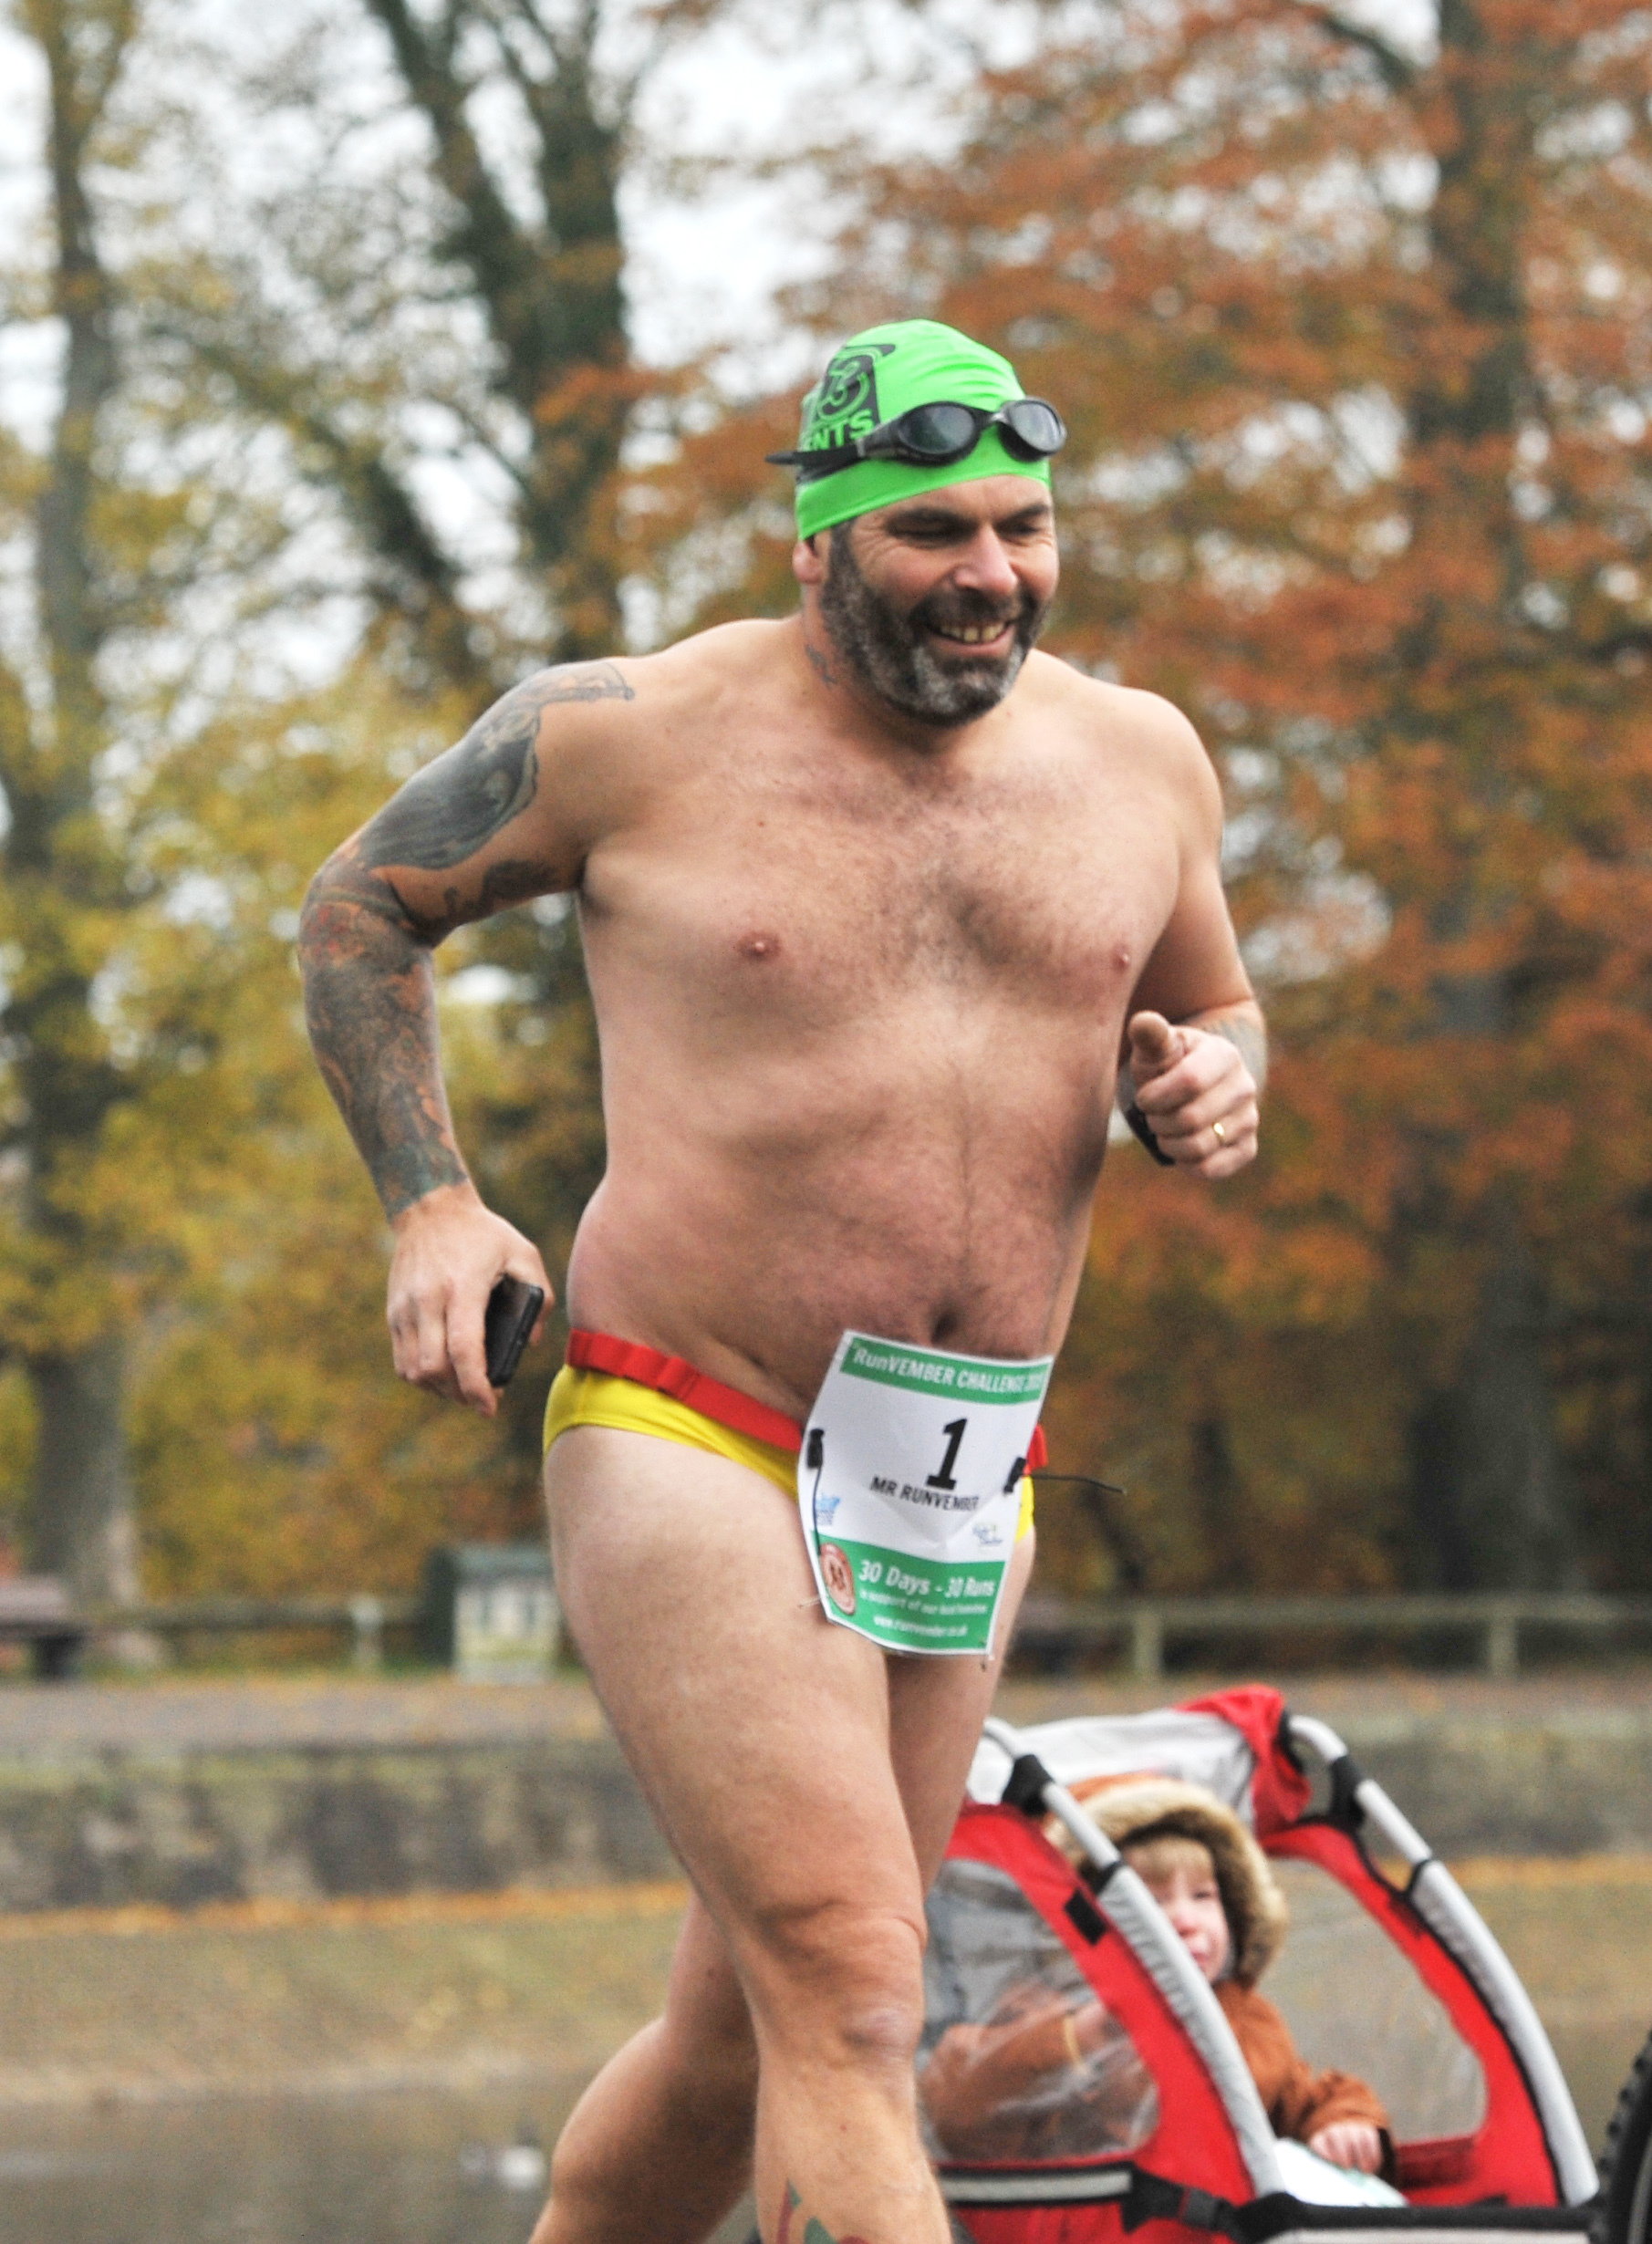 Runvember sees runners take to Coate Water in the Speedos